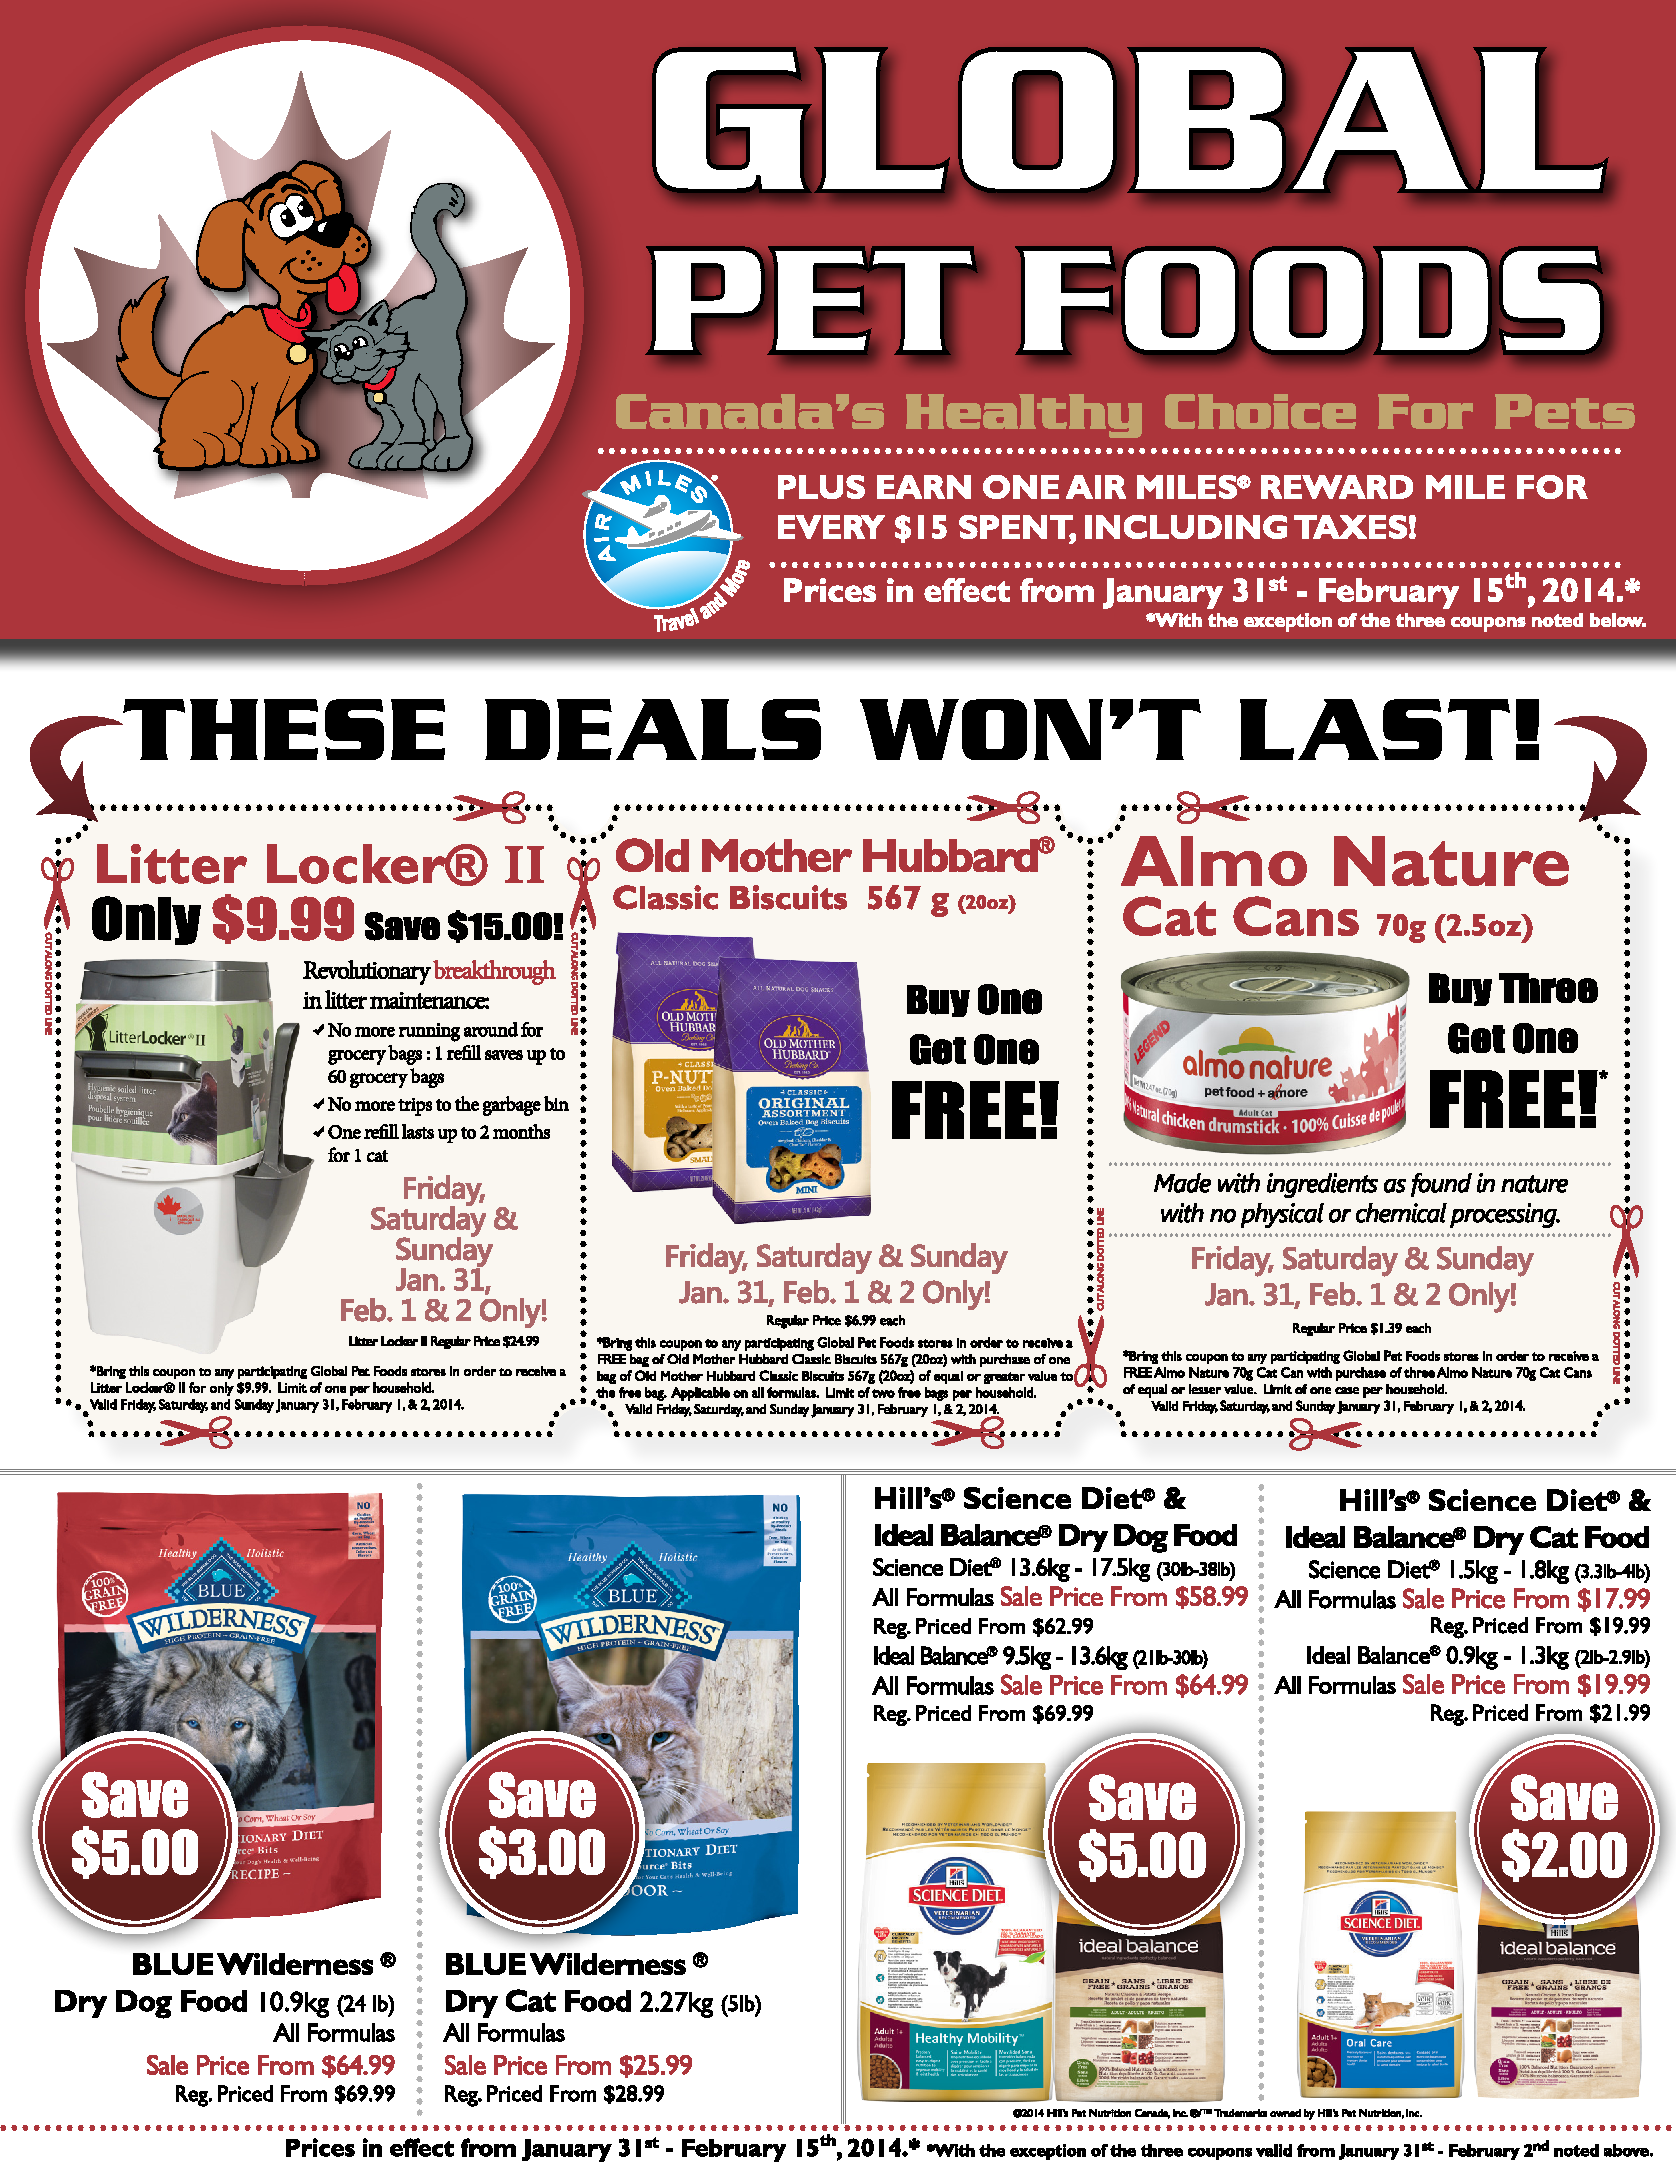 Pin By Global Pet Foods On Save When You Shop With Us Food Animals Flyer Old Mother Hubbard